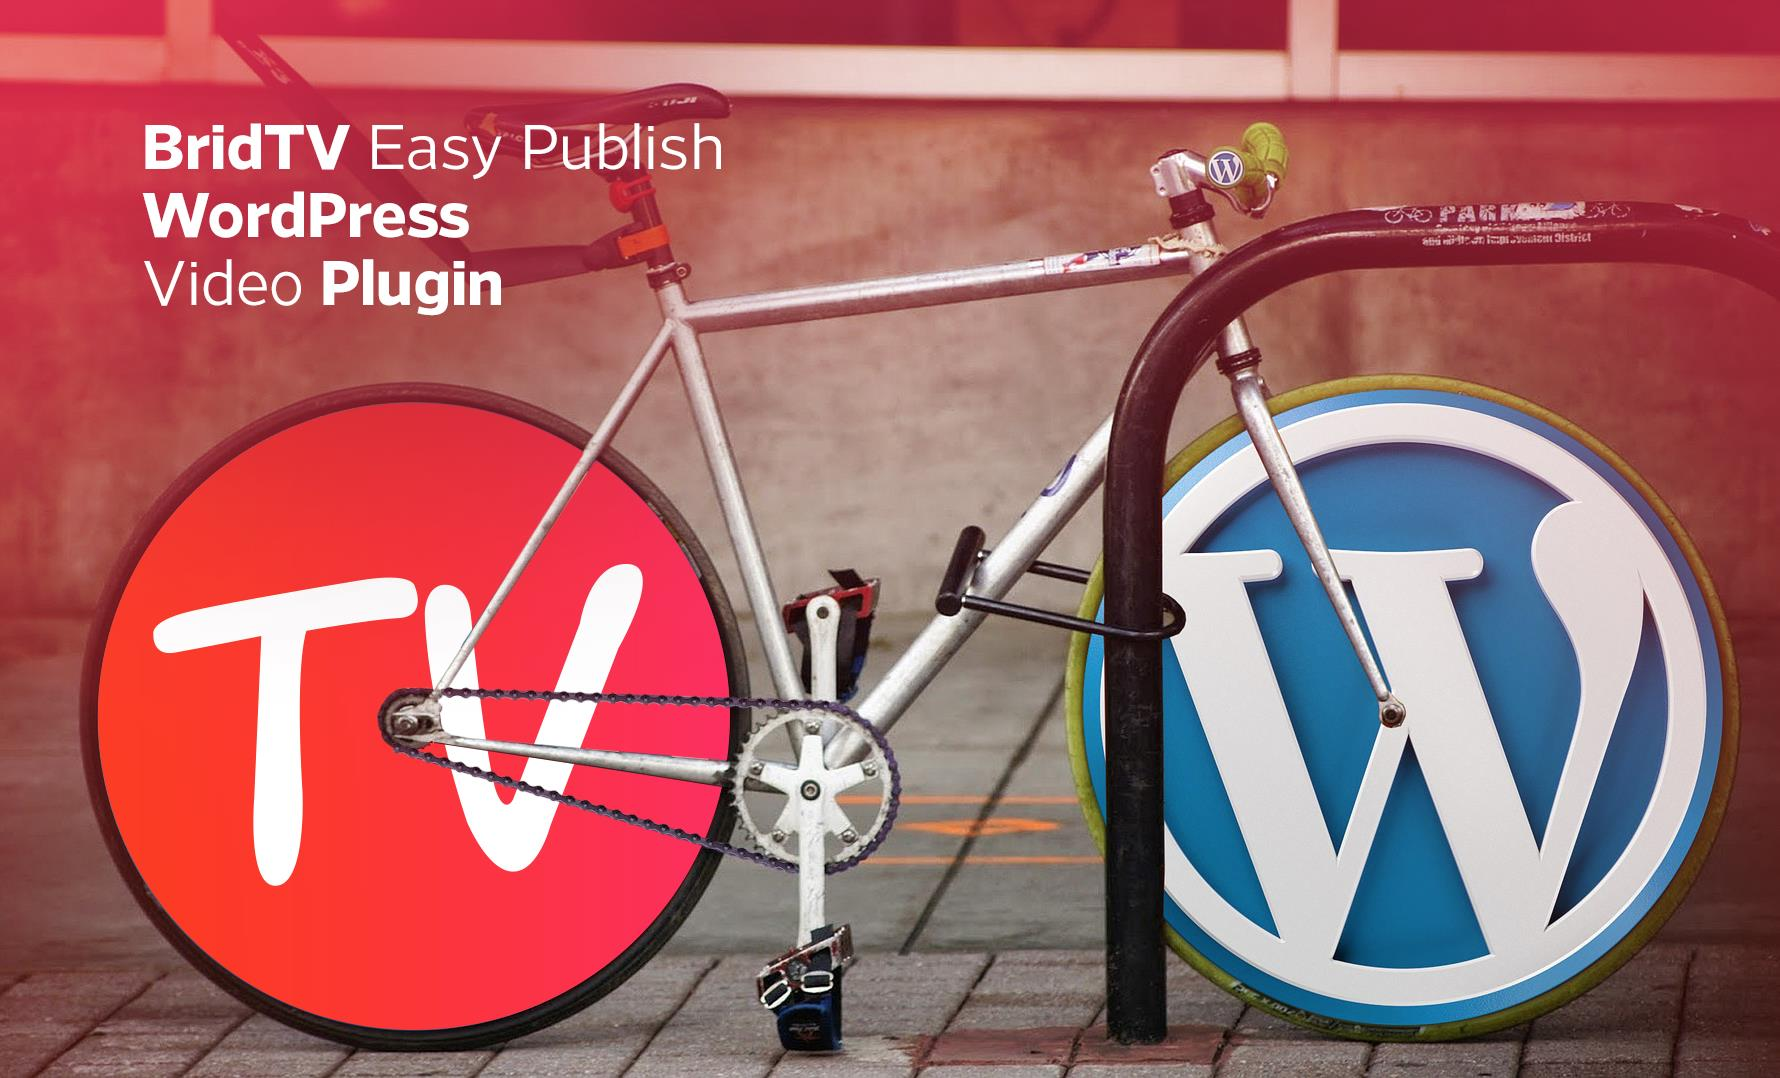 BridTV Easy Publish WordPress Video Plugin